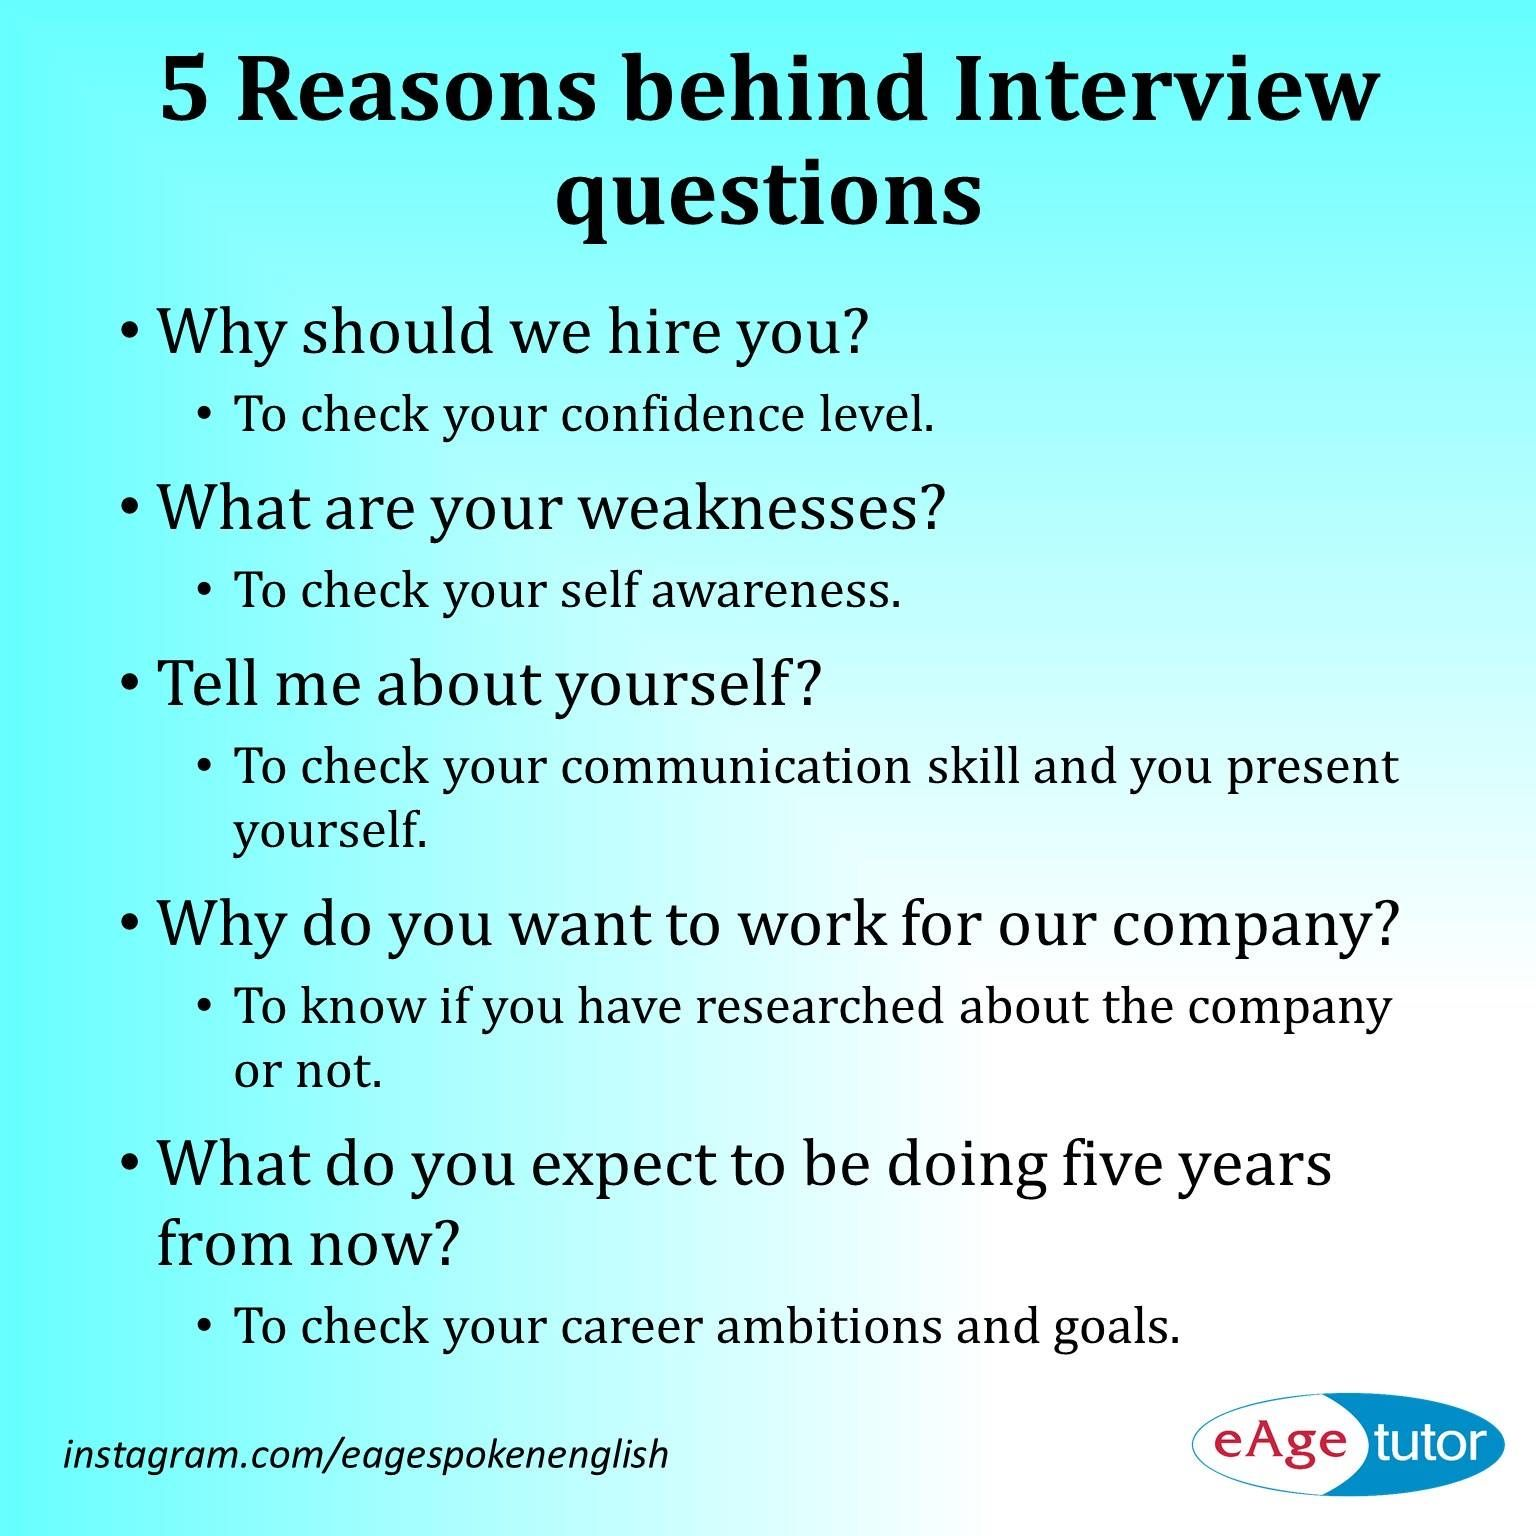 Customer Service Questions 5 Reasons Behind Interview Questions Passionate Parenting